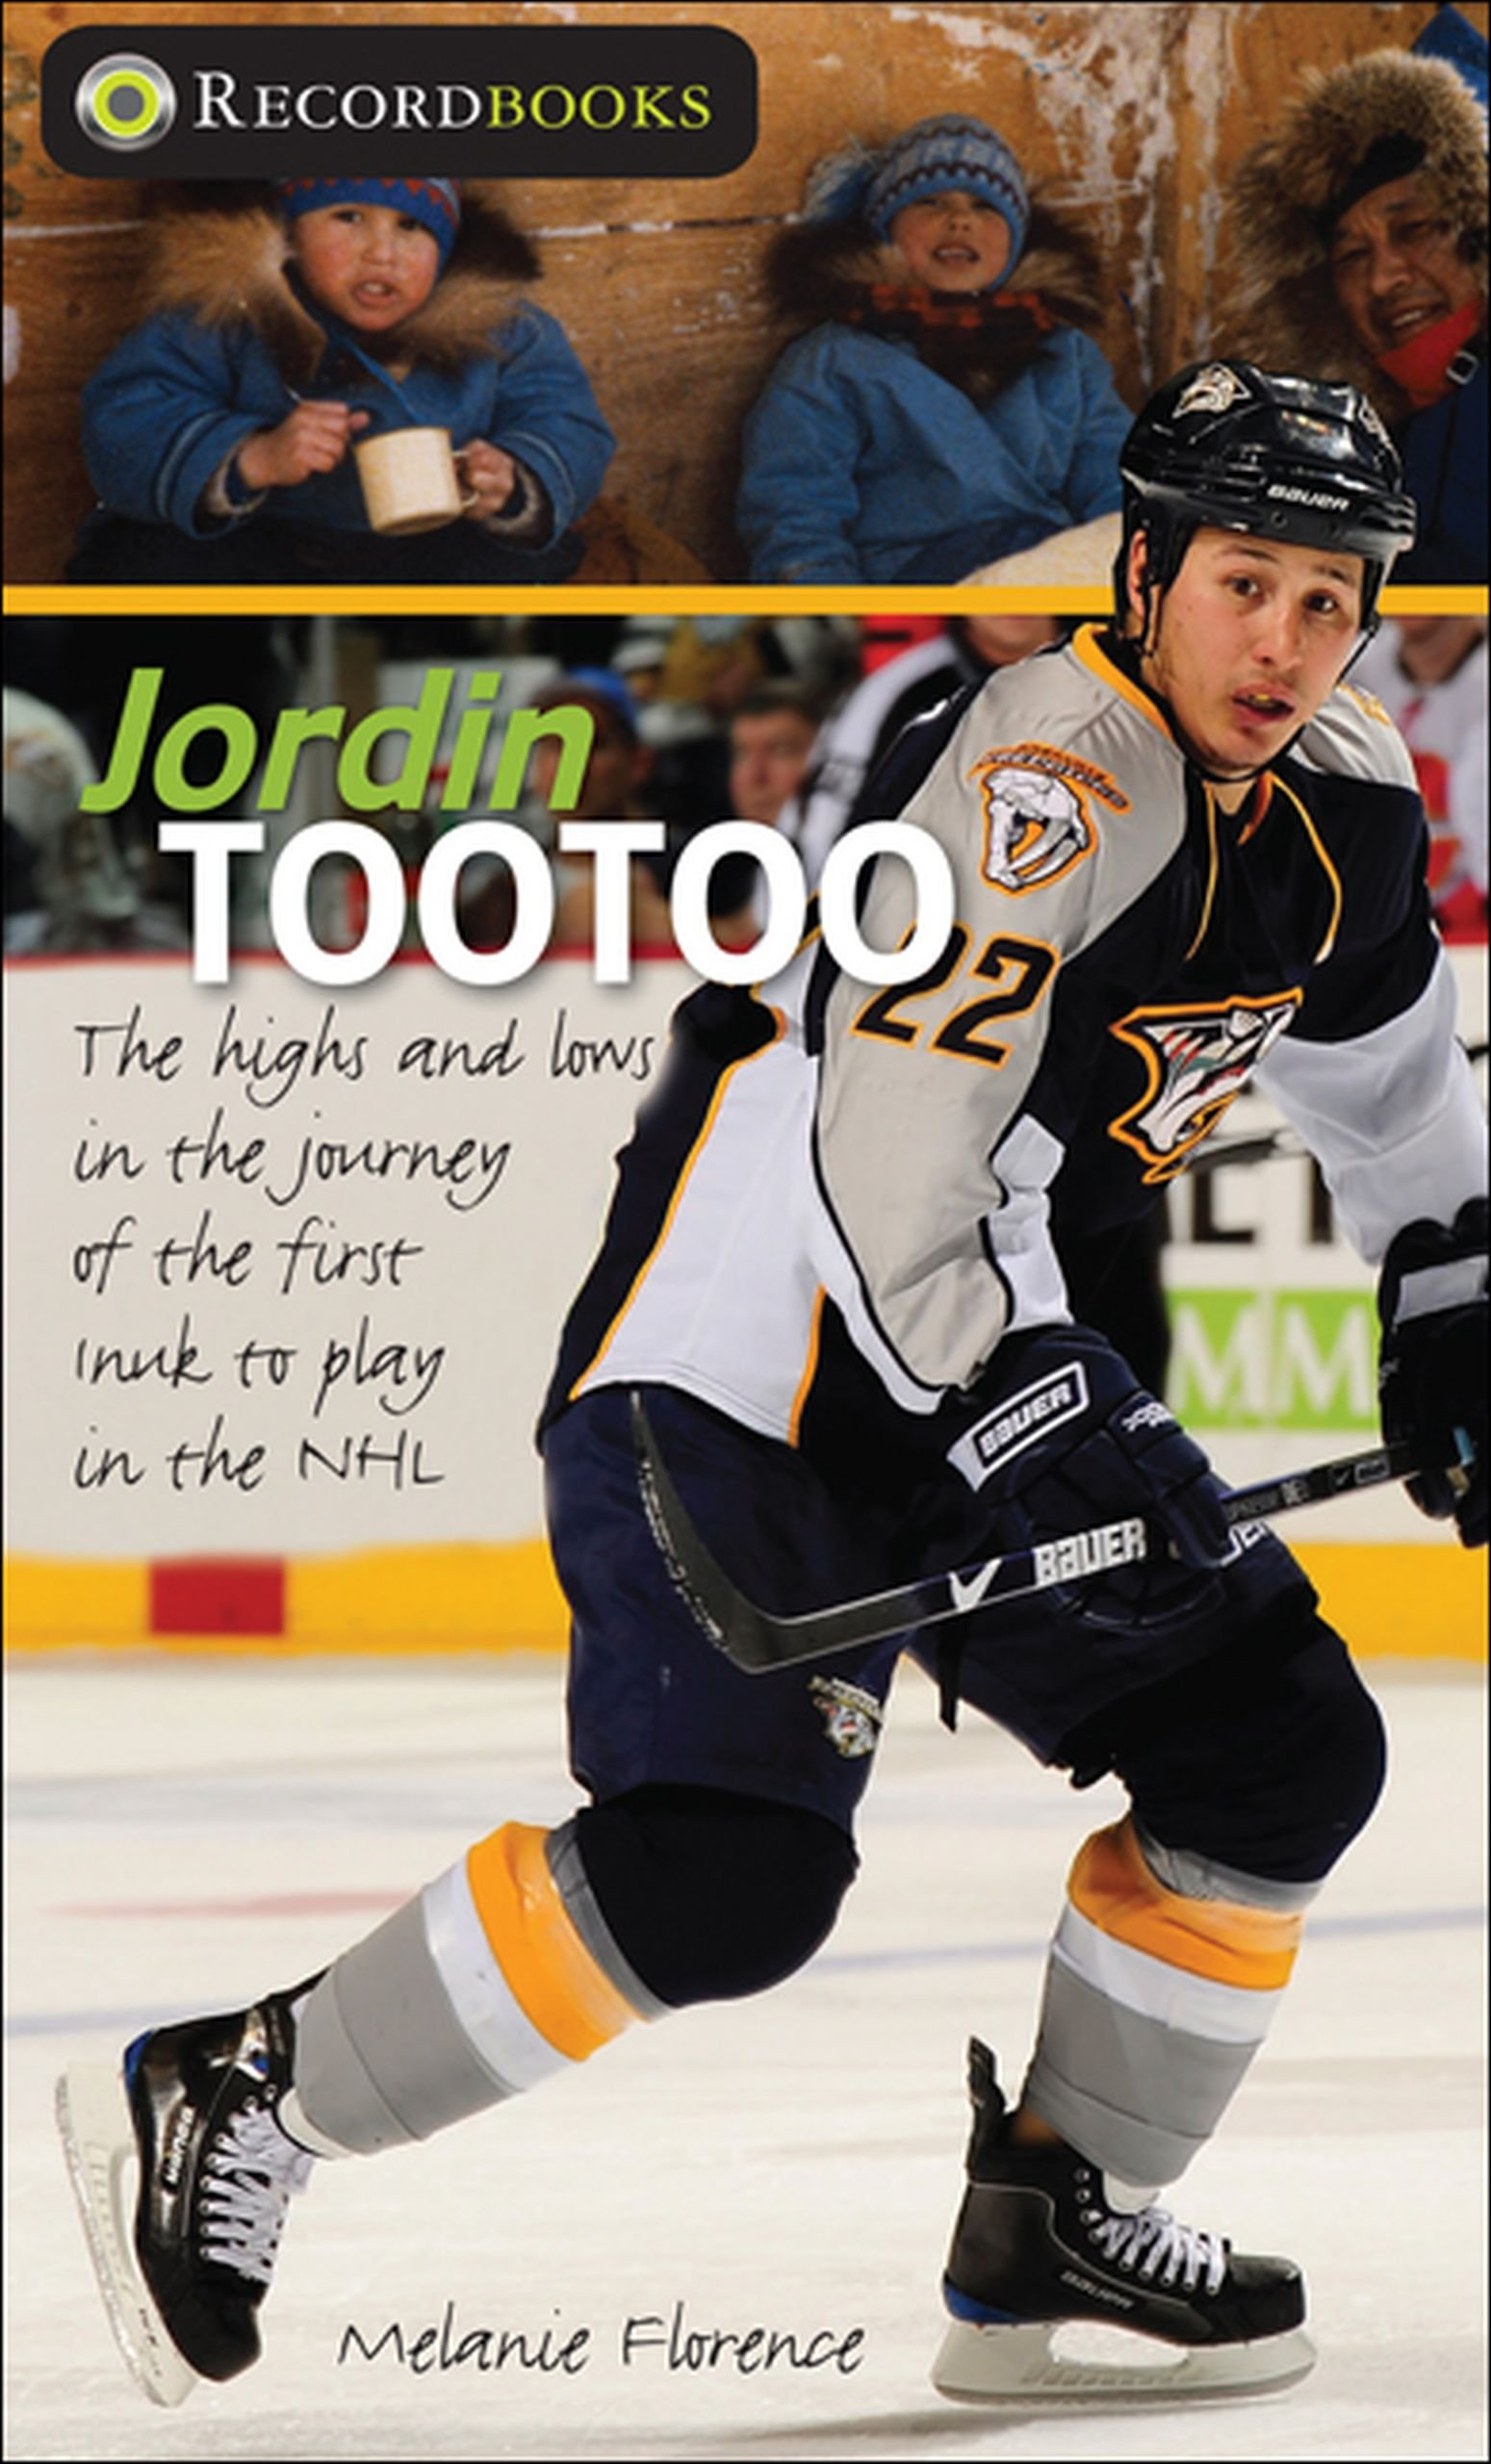 Jordin Tootoo: The highs and lows in the journey of the first Inuit to play in the NHL (Lorimer Recordbooks)